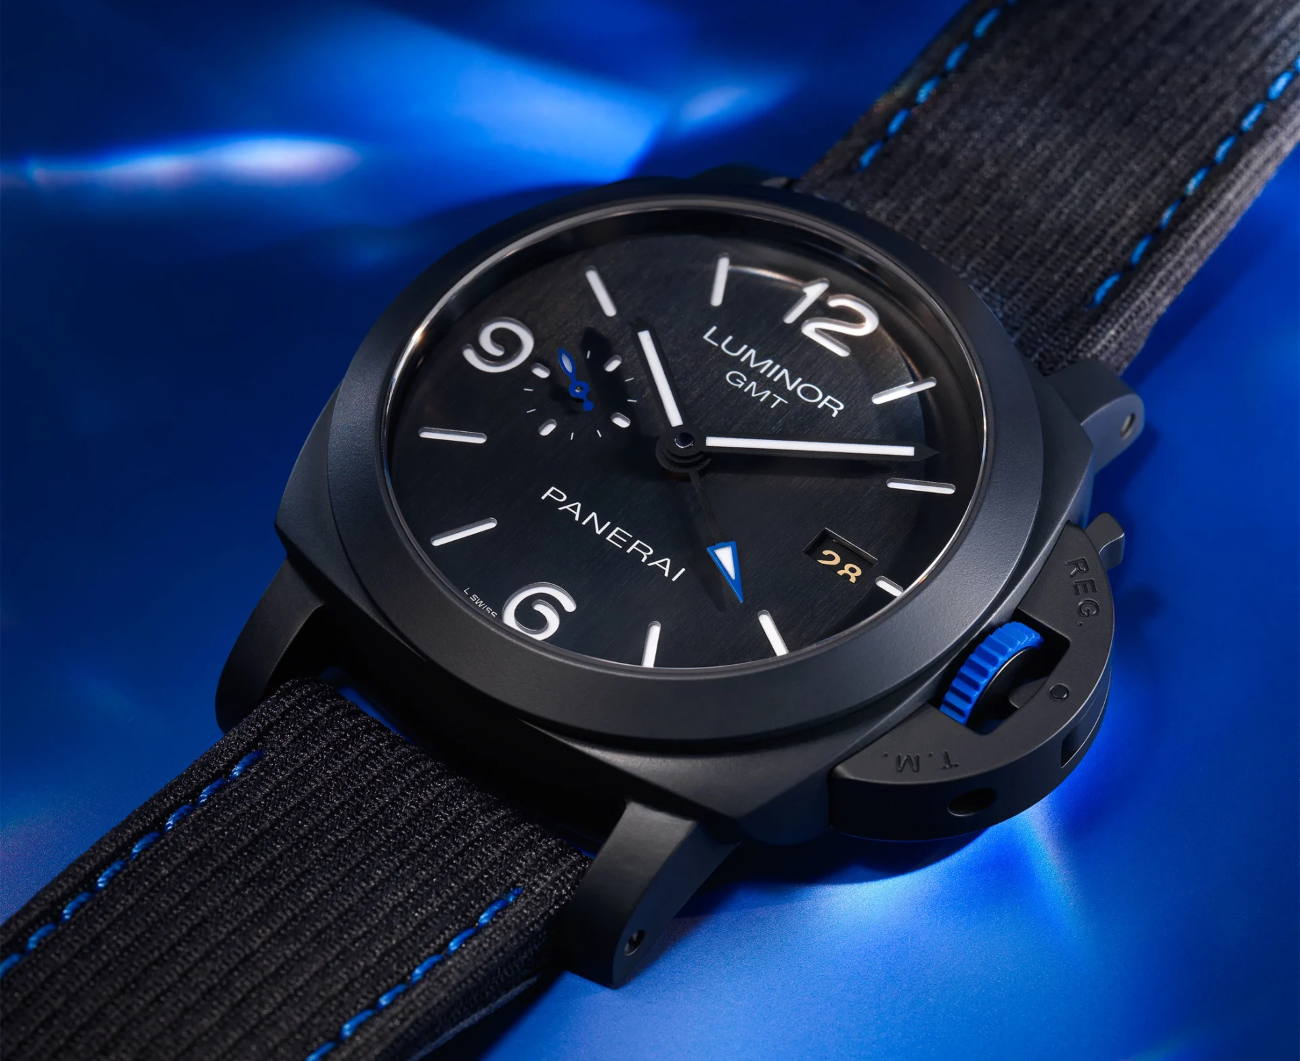 Panerai_luminor_gmt_Bucherer_blue_3-_Europa_Star_watch_magazine_2020